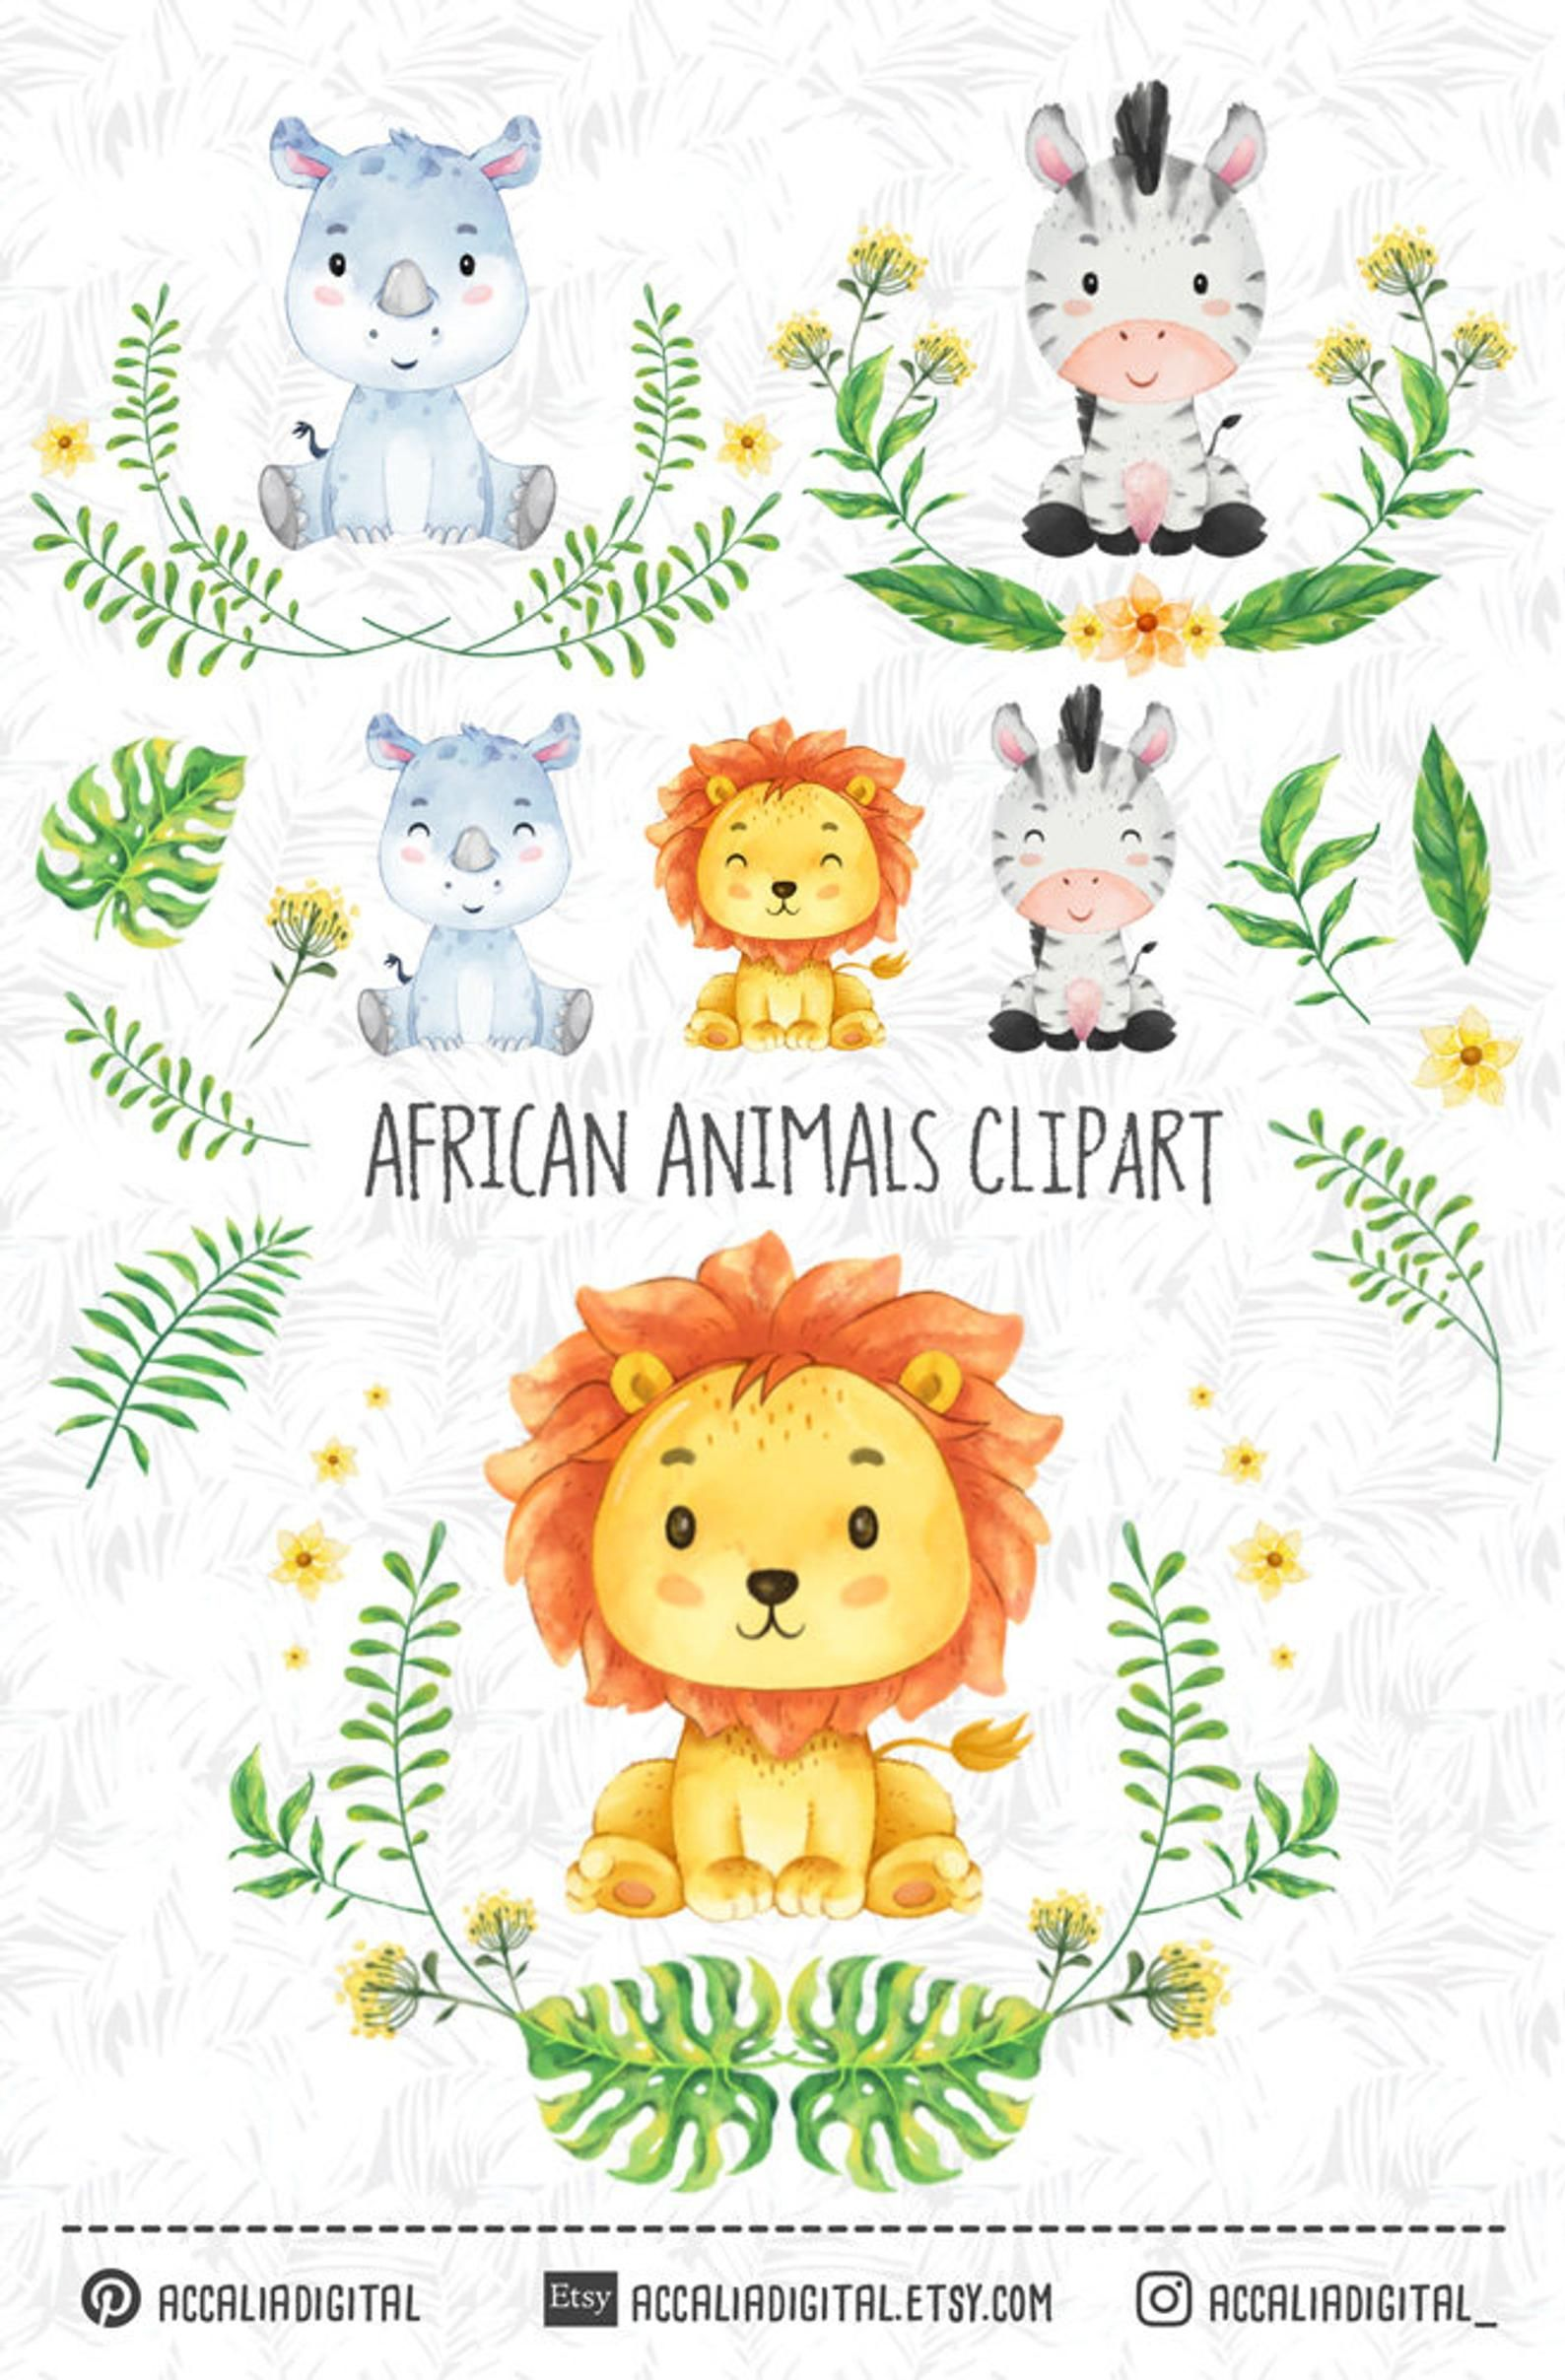 African Animals Clipart Set 1 Watercolor Animal Sticker Lion Etsy In 2021 Animal Clipart African Animals Watercolor Animals